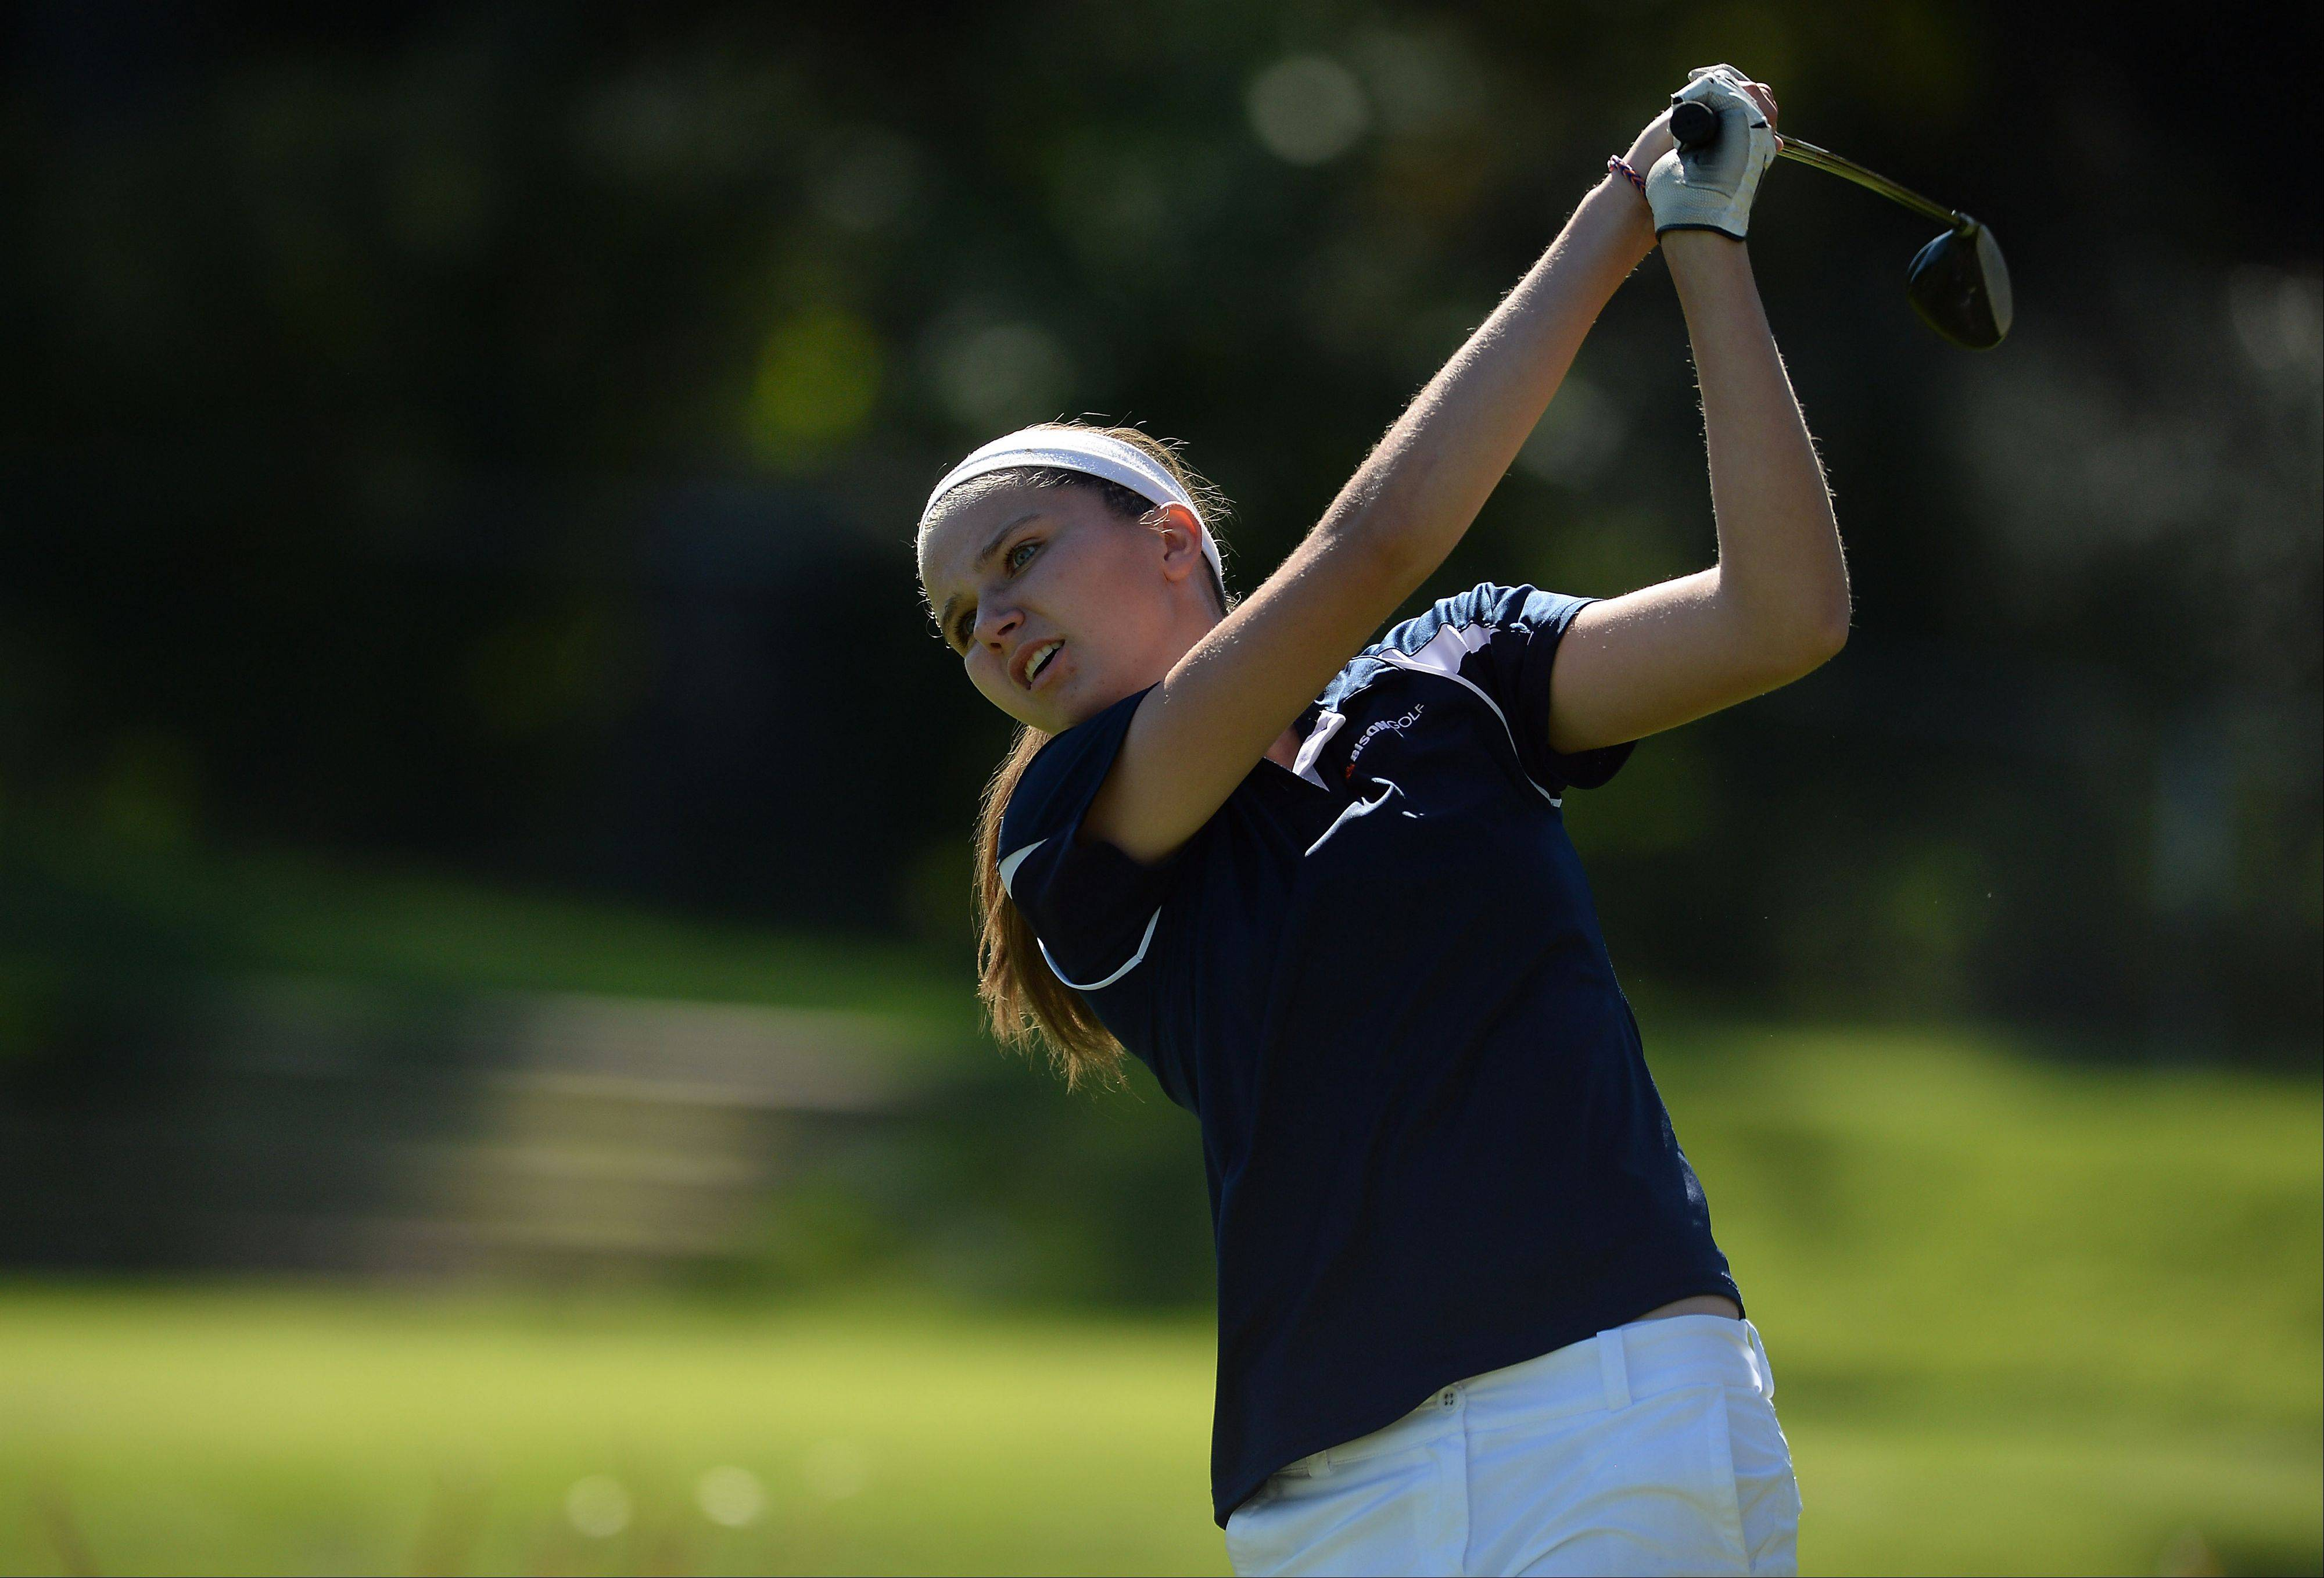 Courtney Meyer of Buffalo Grove High School drives her ball down the fairway on the fourth hole in the girls golf regional at Mt. Prospect Golf Club on Wednesday.